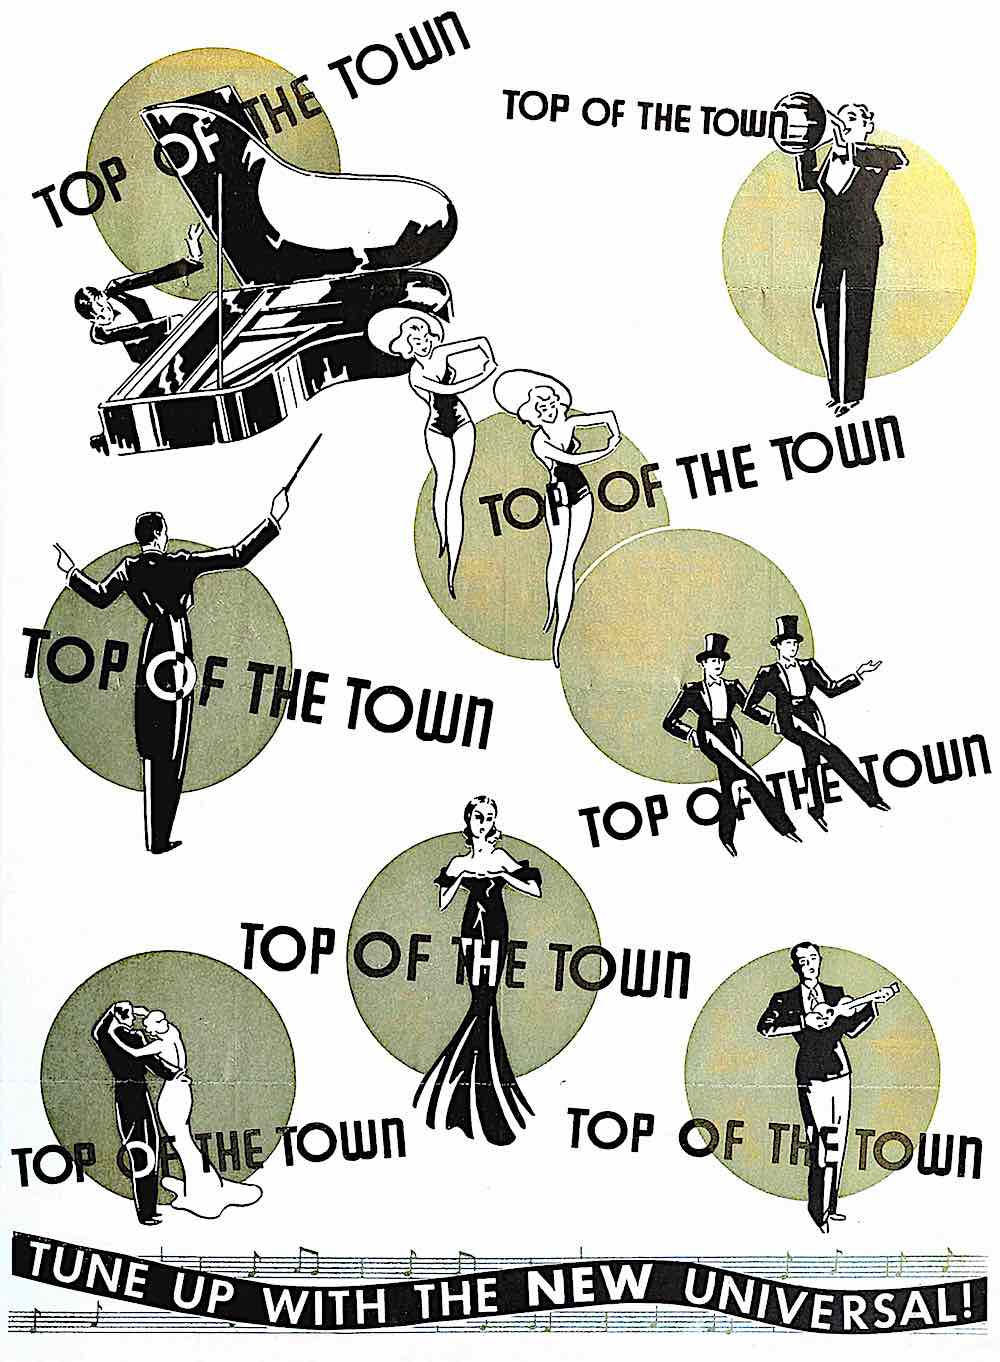 1936 Top Of The Town, a metallic ink poster